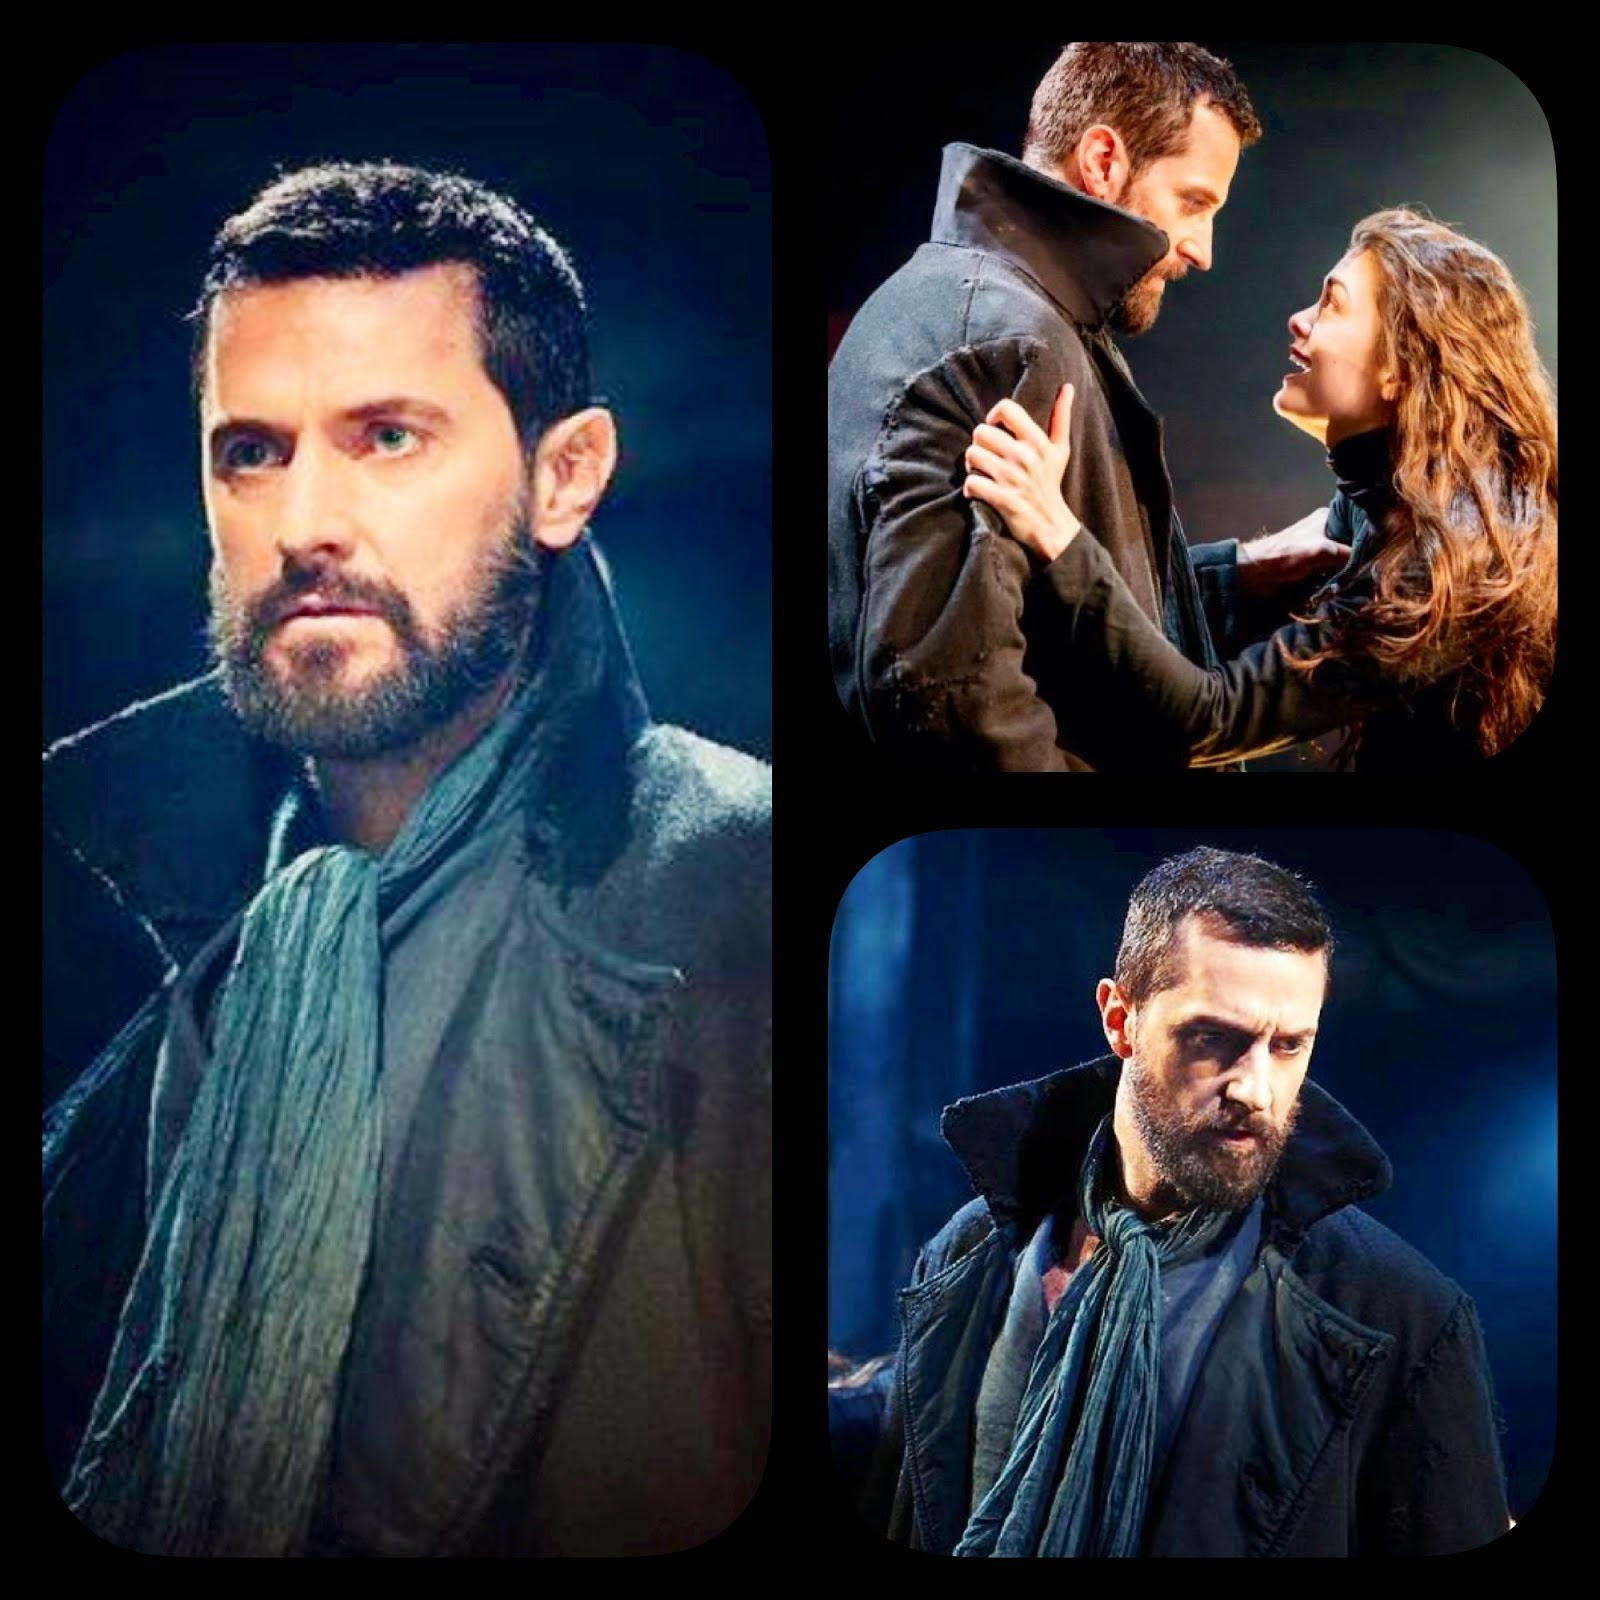 The Crucible Experience - Meeting Richard Armitage